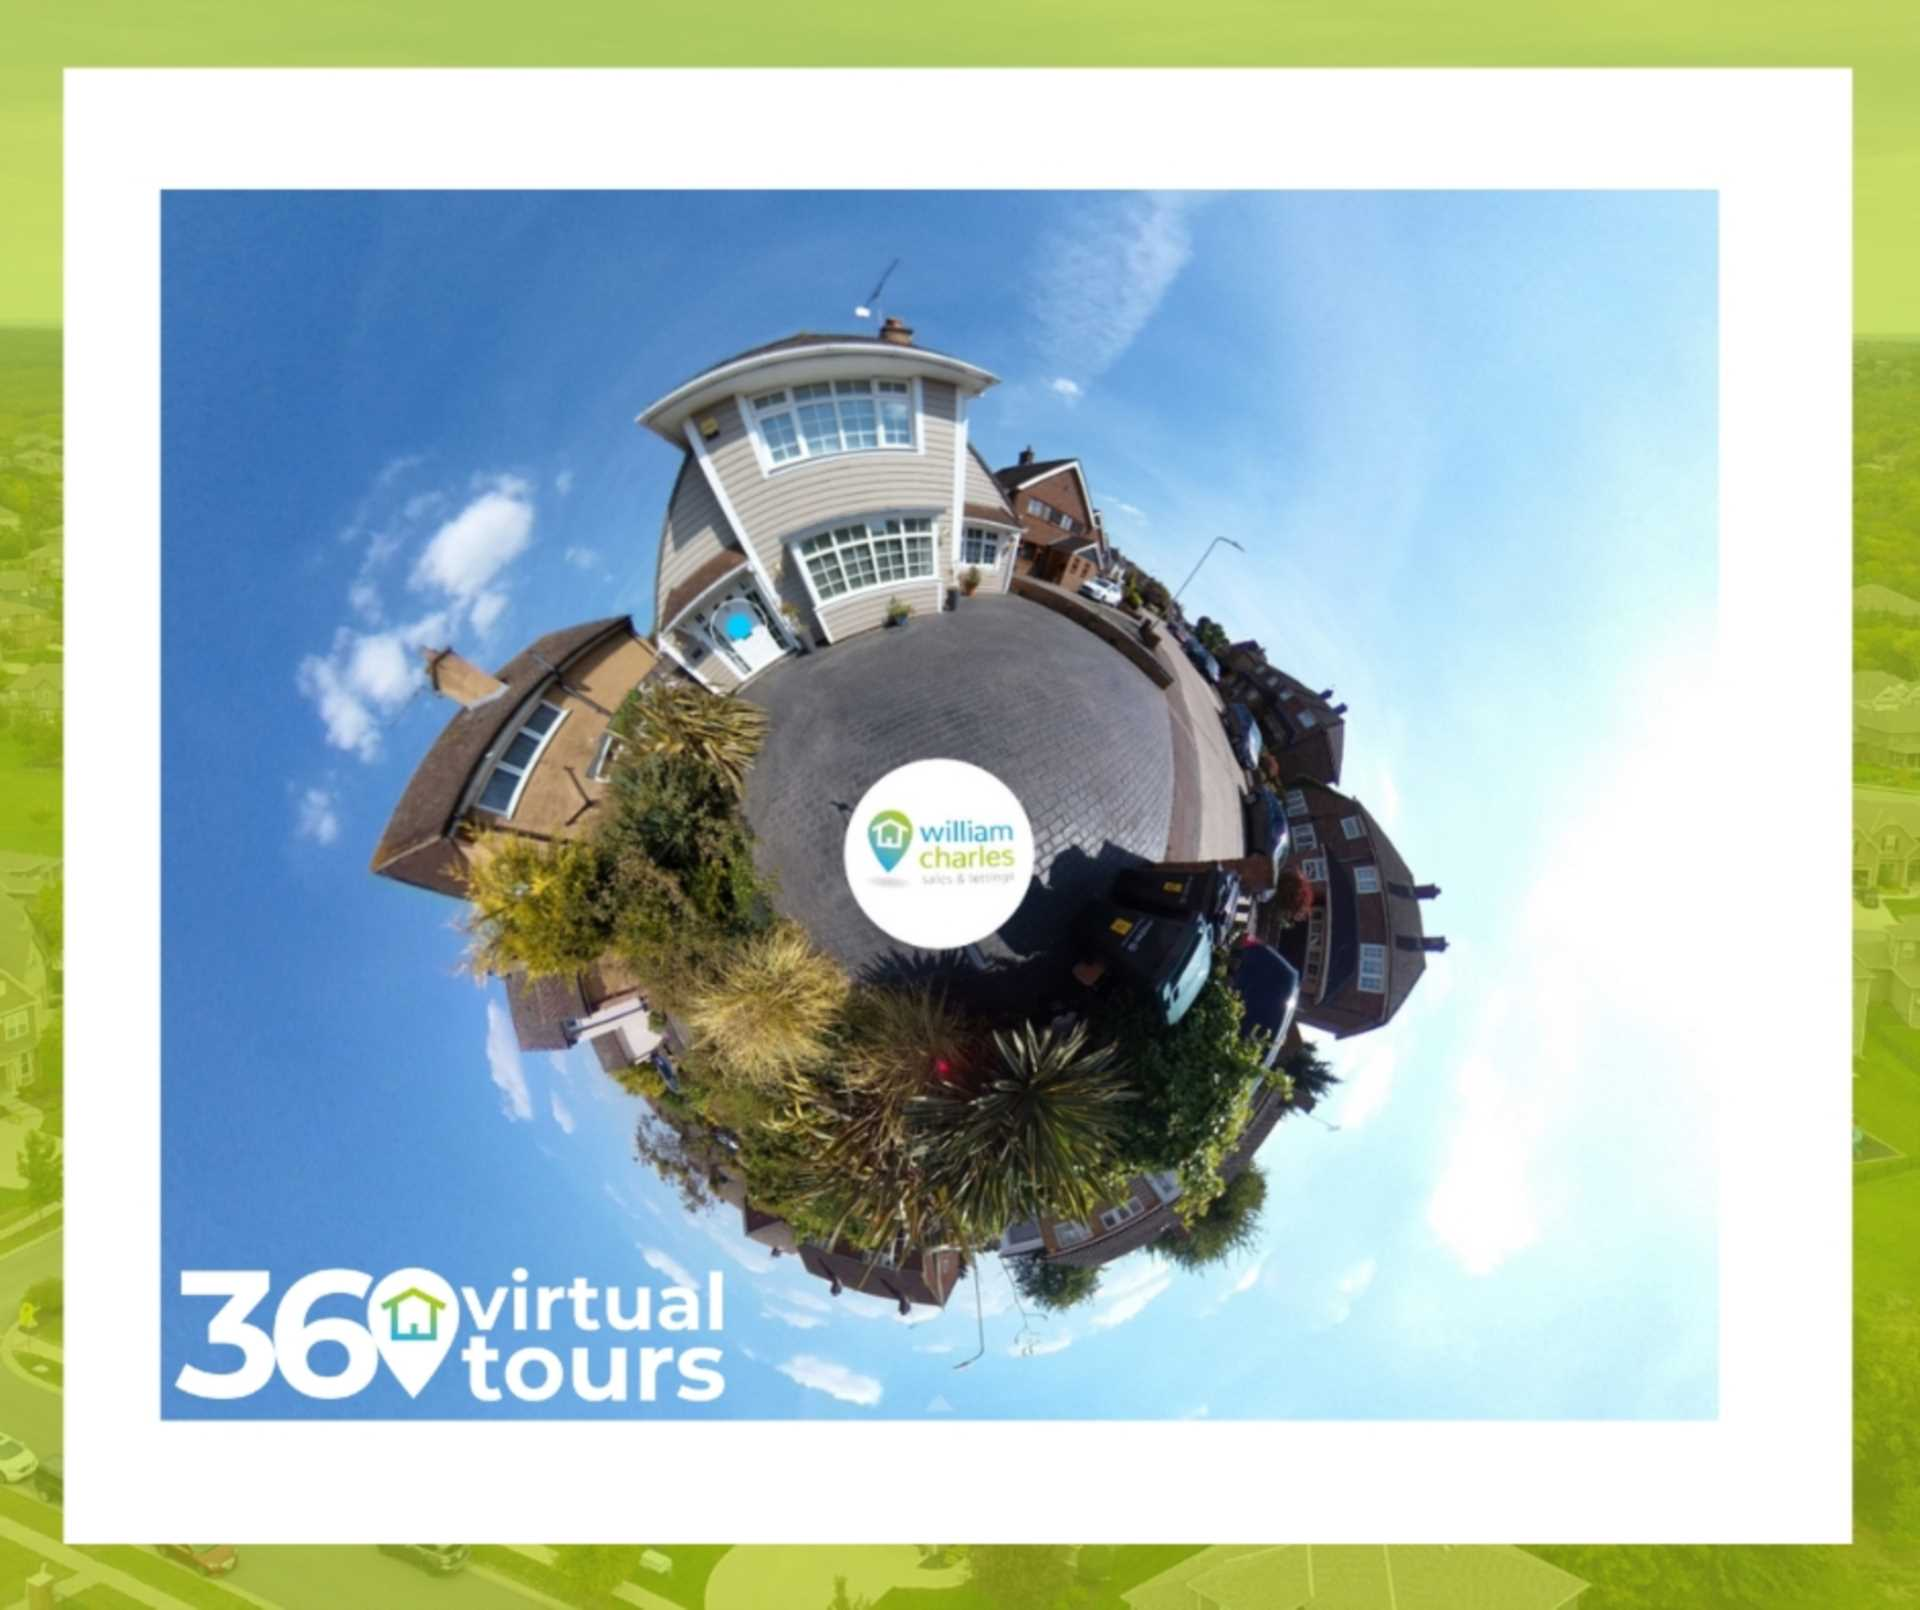 View properties online 24/7 with 360 Virtual Tours